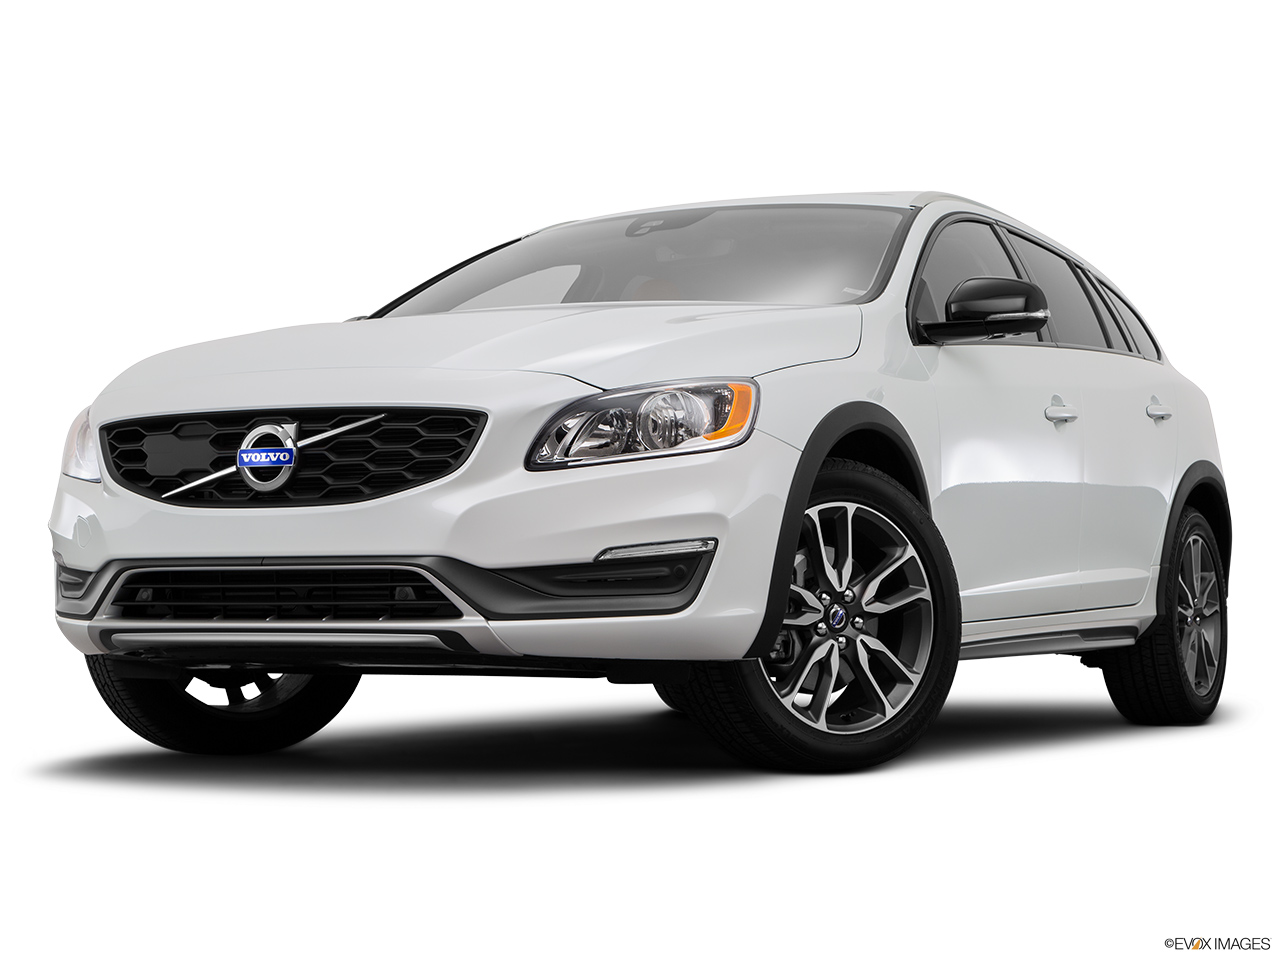 2015 Volvo V60 Cross Country T5 AWD Front angle view, low wide perspective.